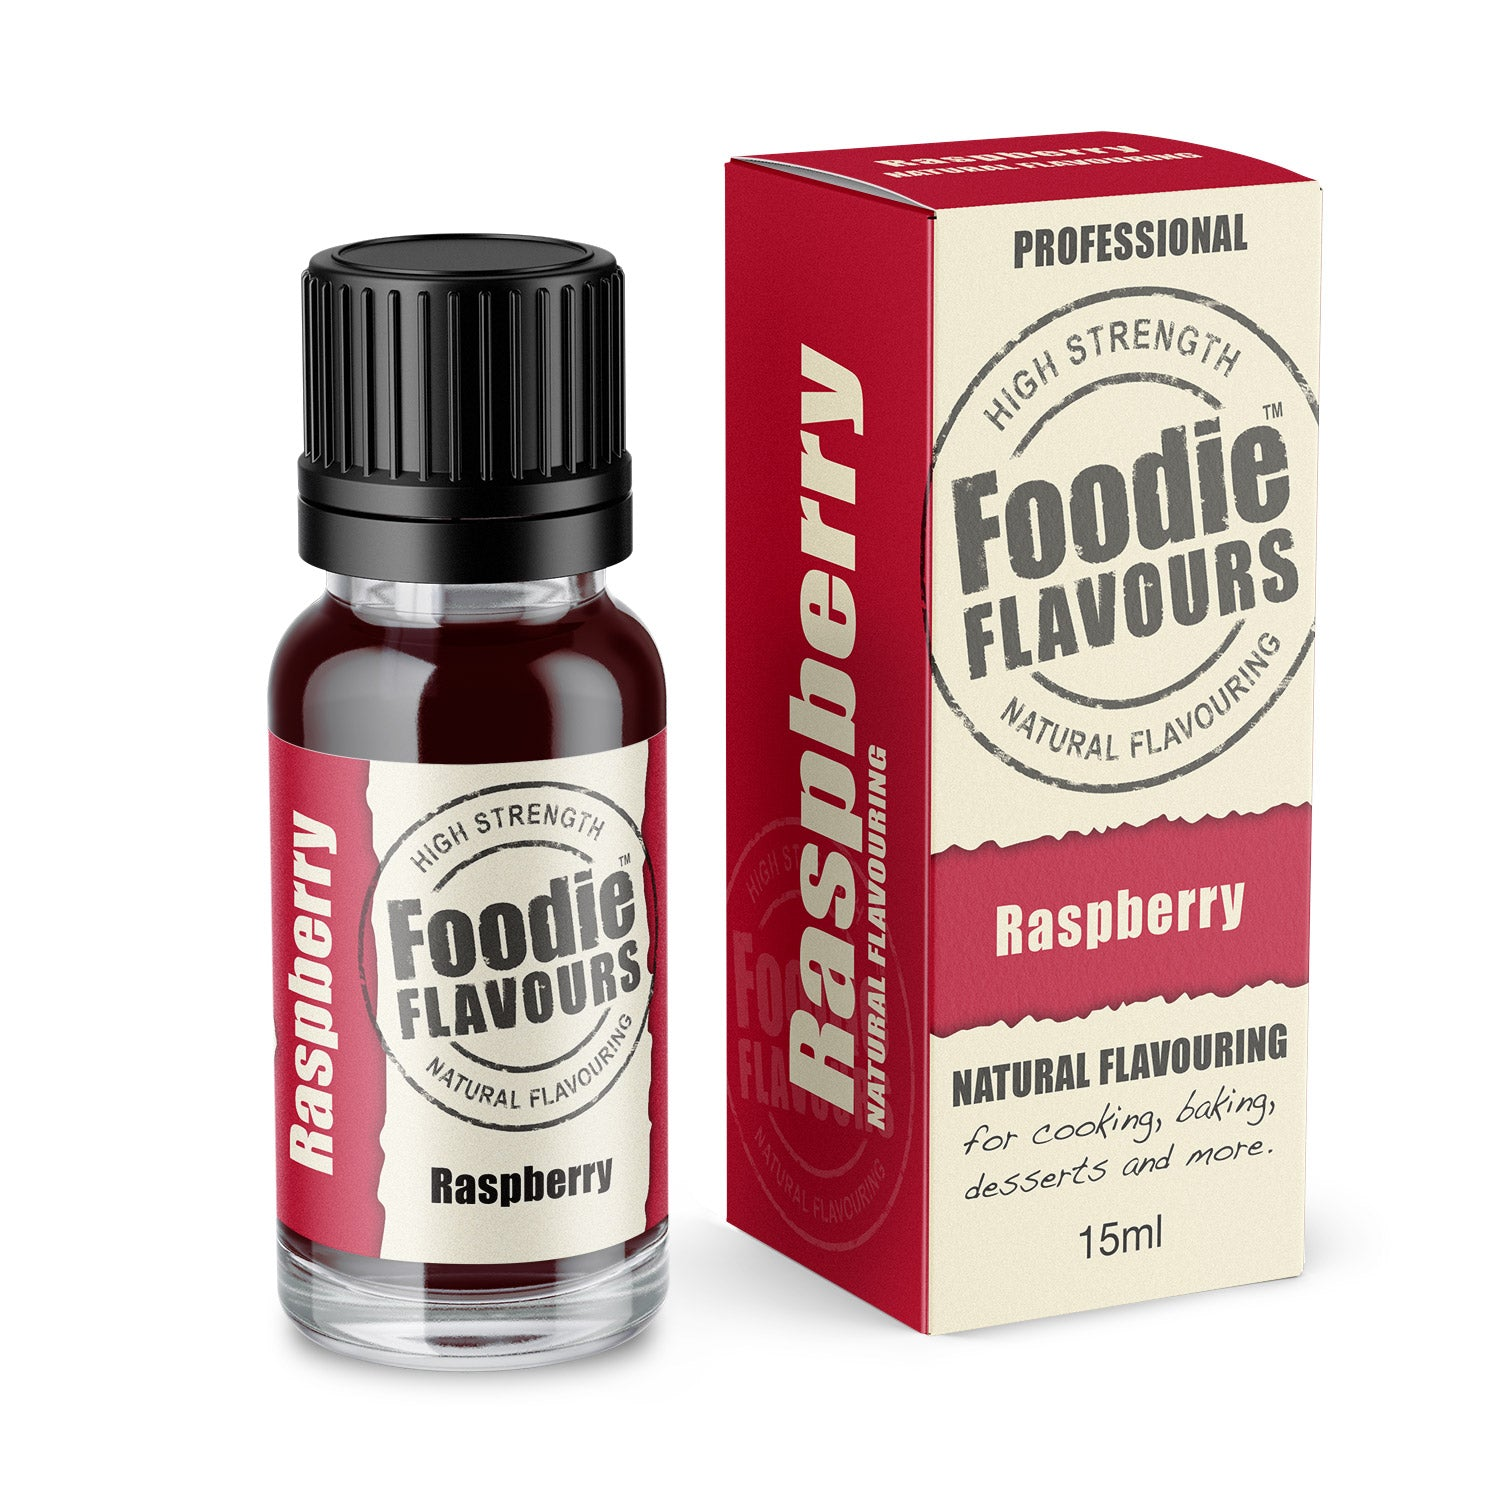 Raspberry Natural Flavouring 15ml